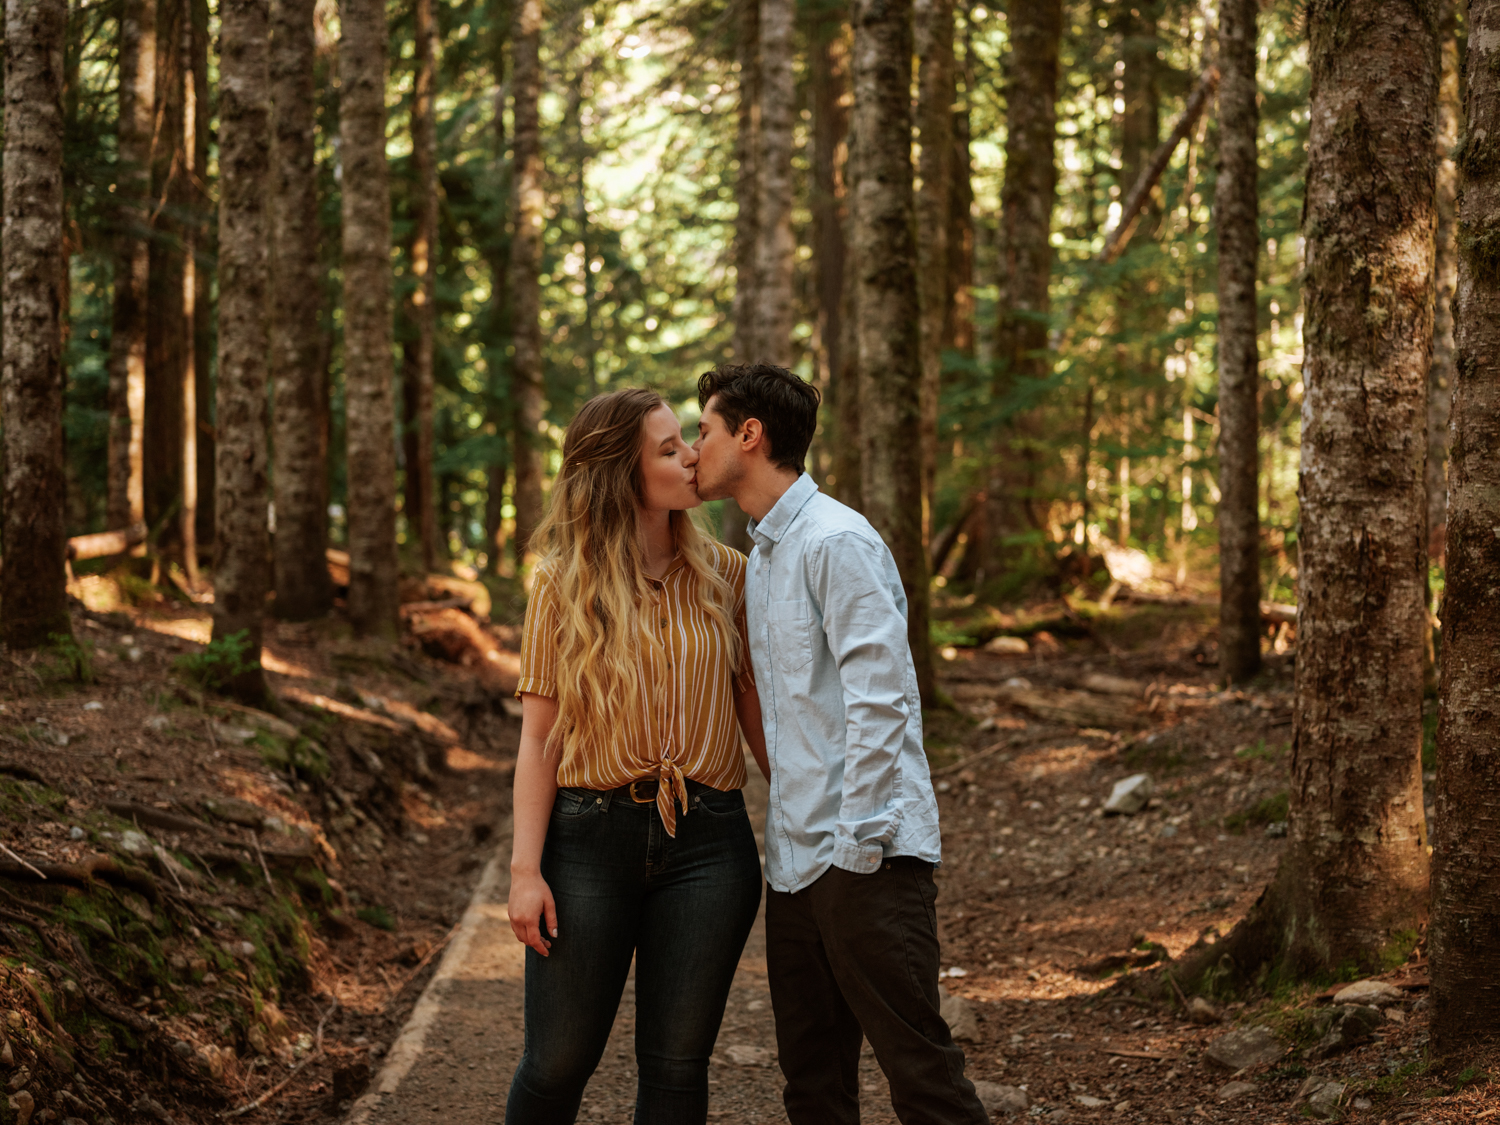 Franklin Falls Washington Engagement Session Stolen Glimpses Seattle Wedding Photographer 05.jpg